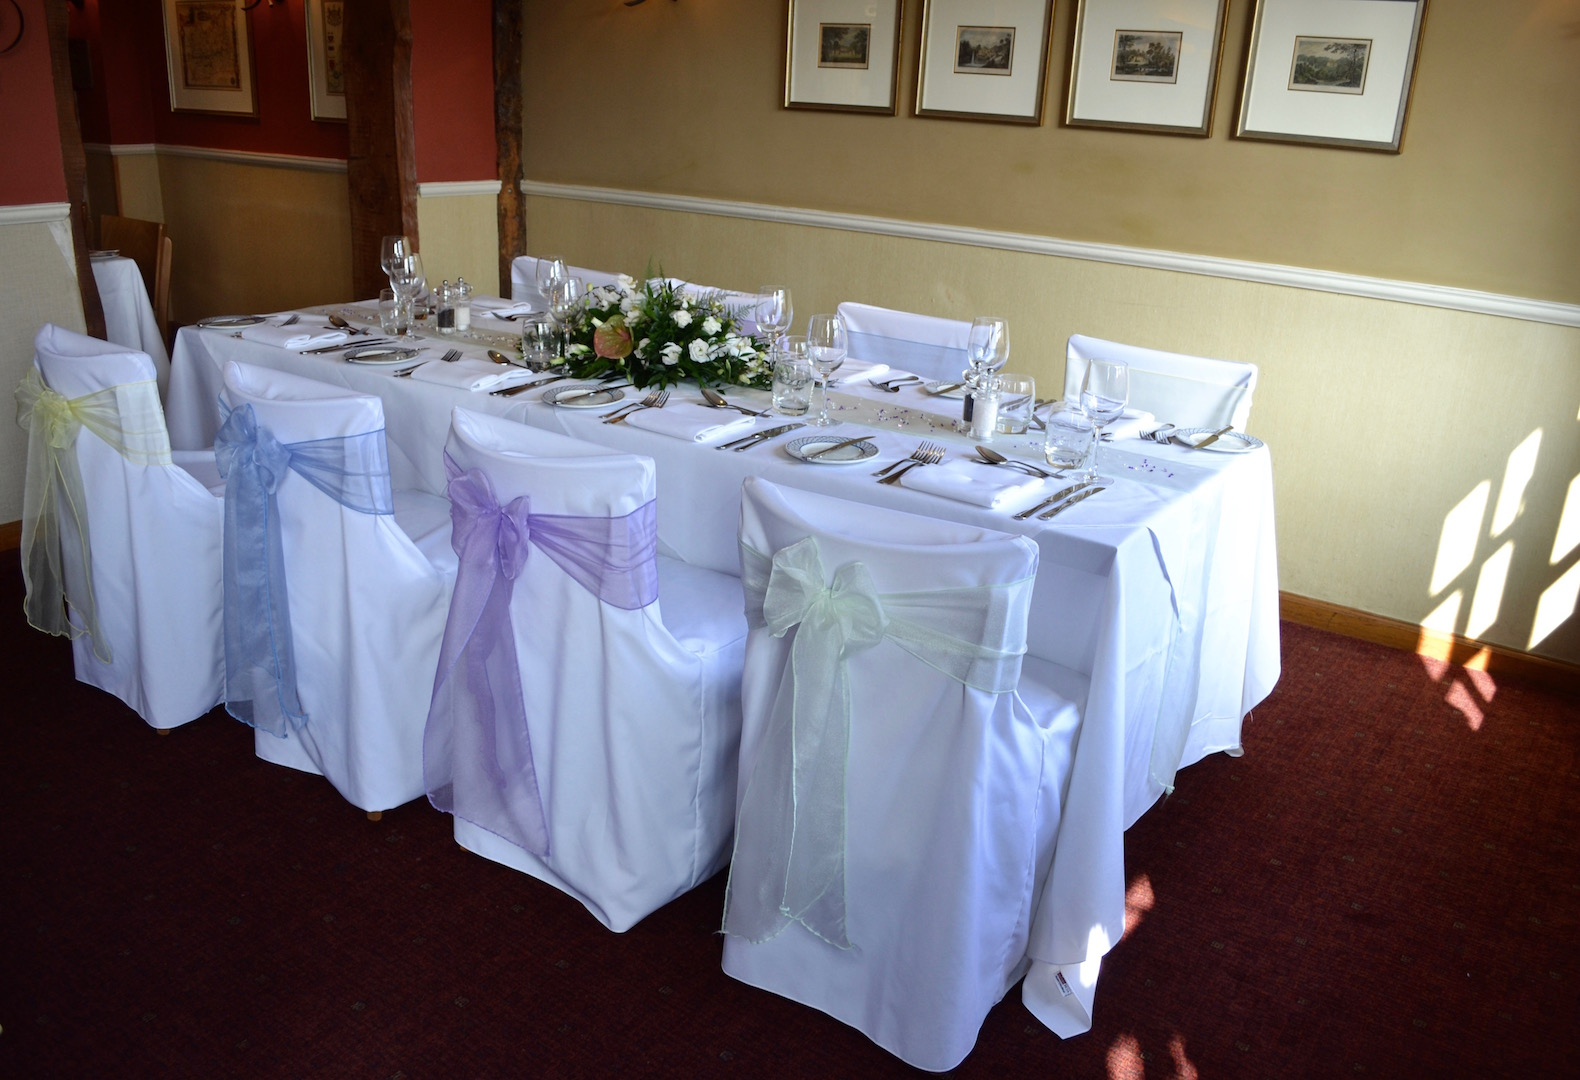 The Bell Inn New Forest wedding venue table arrangement